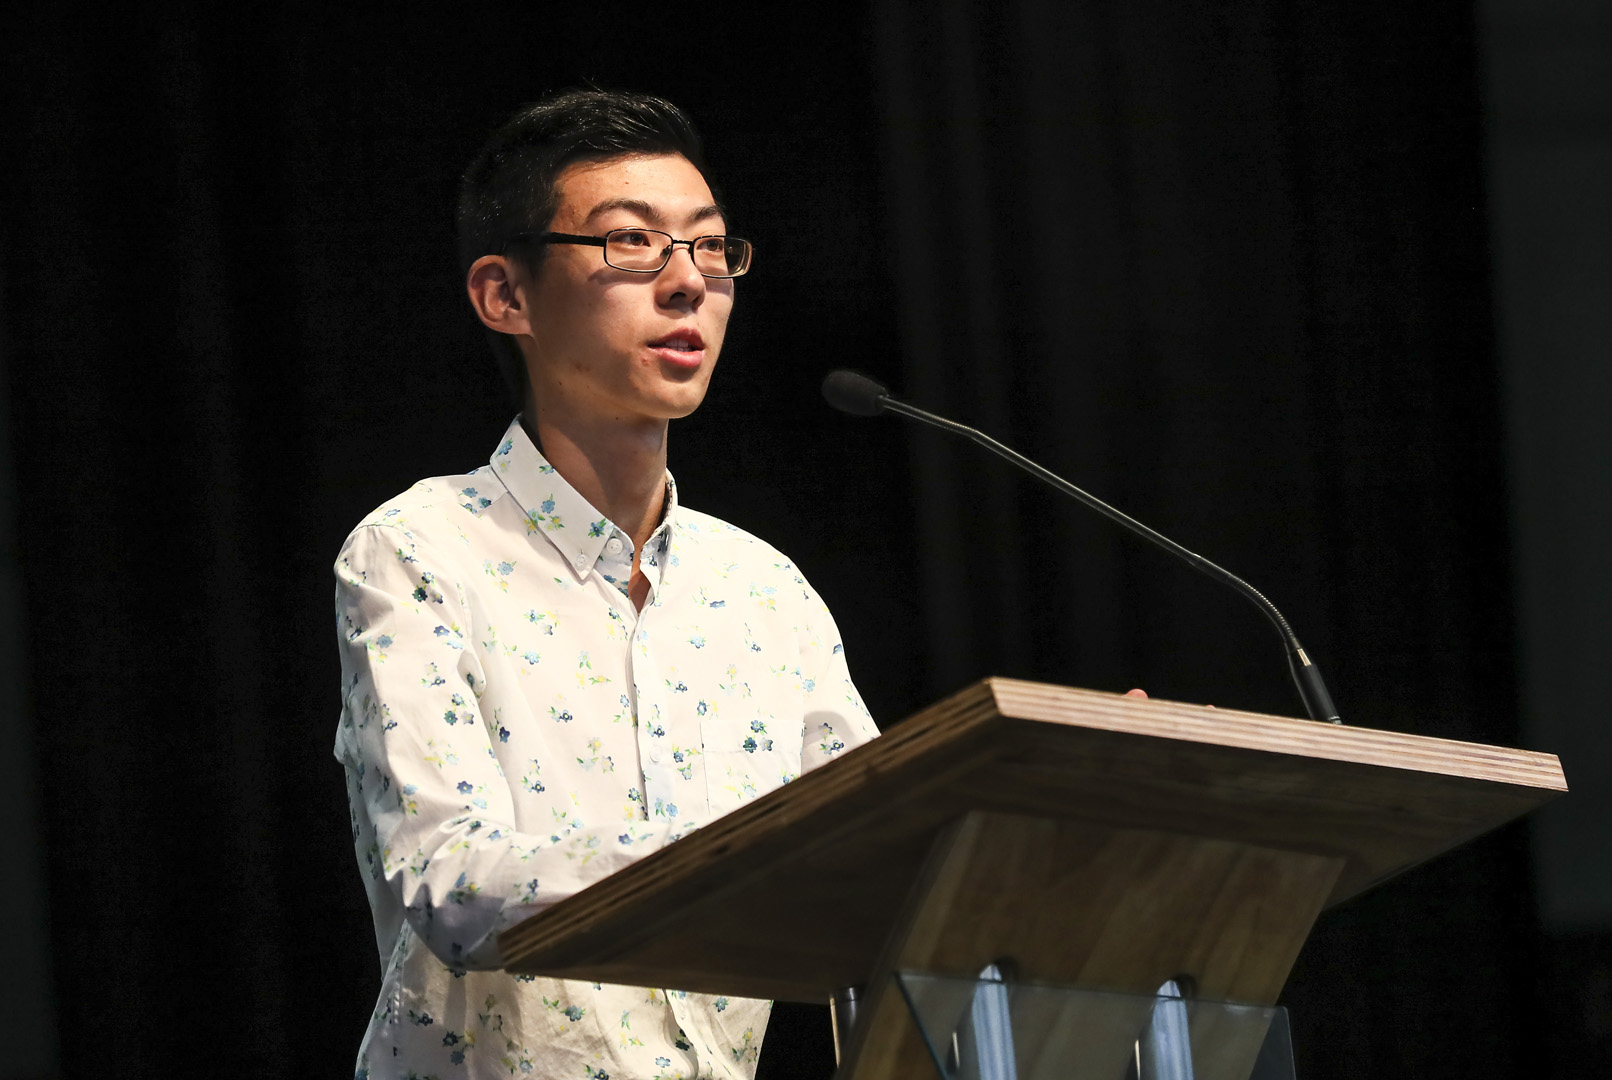 William Wang Speaking